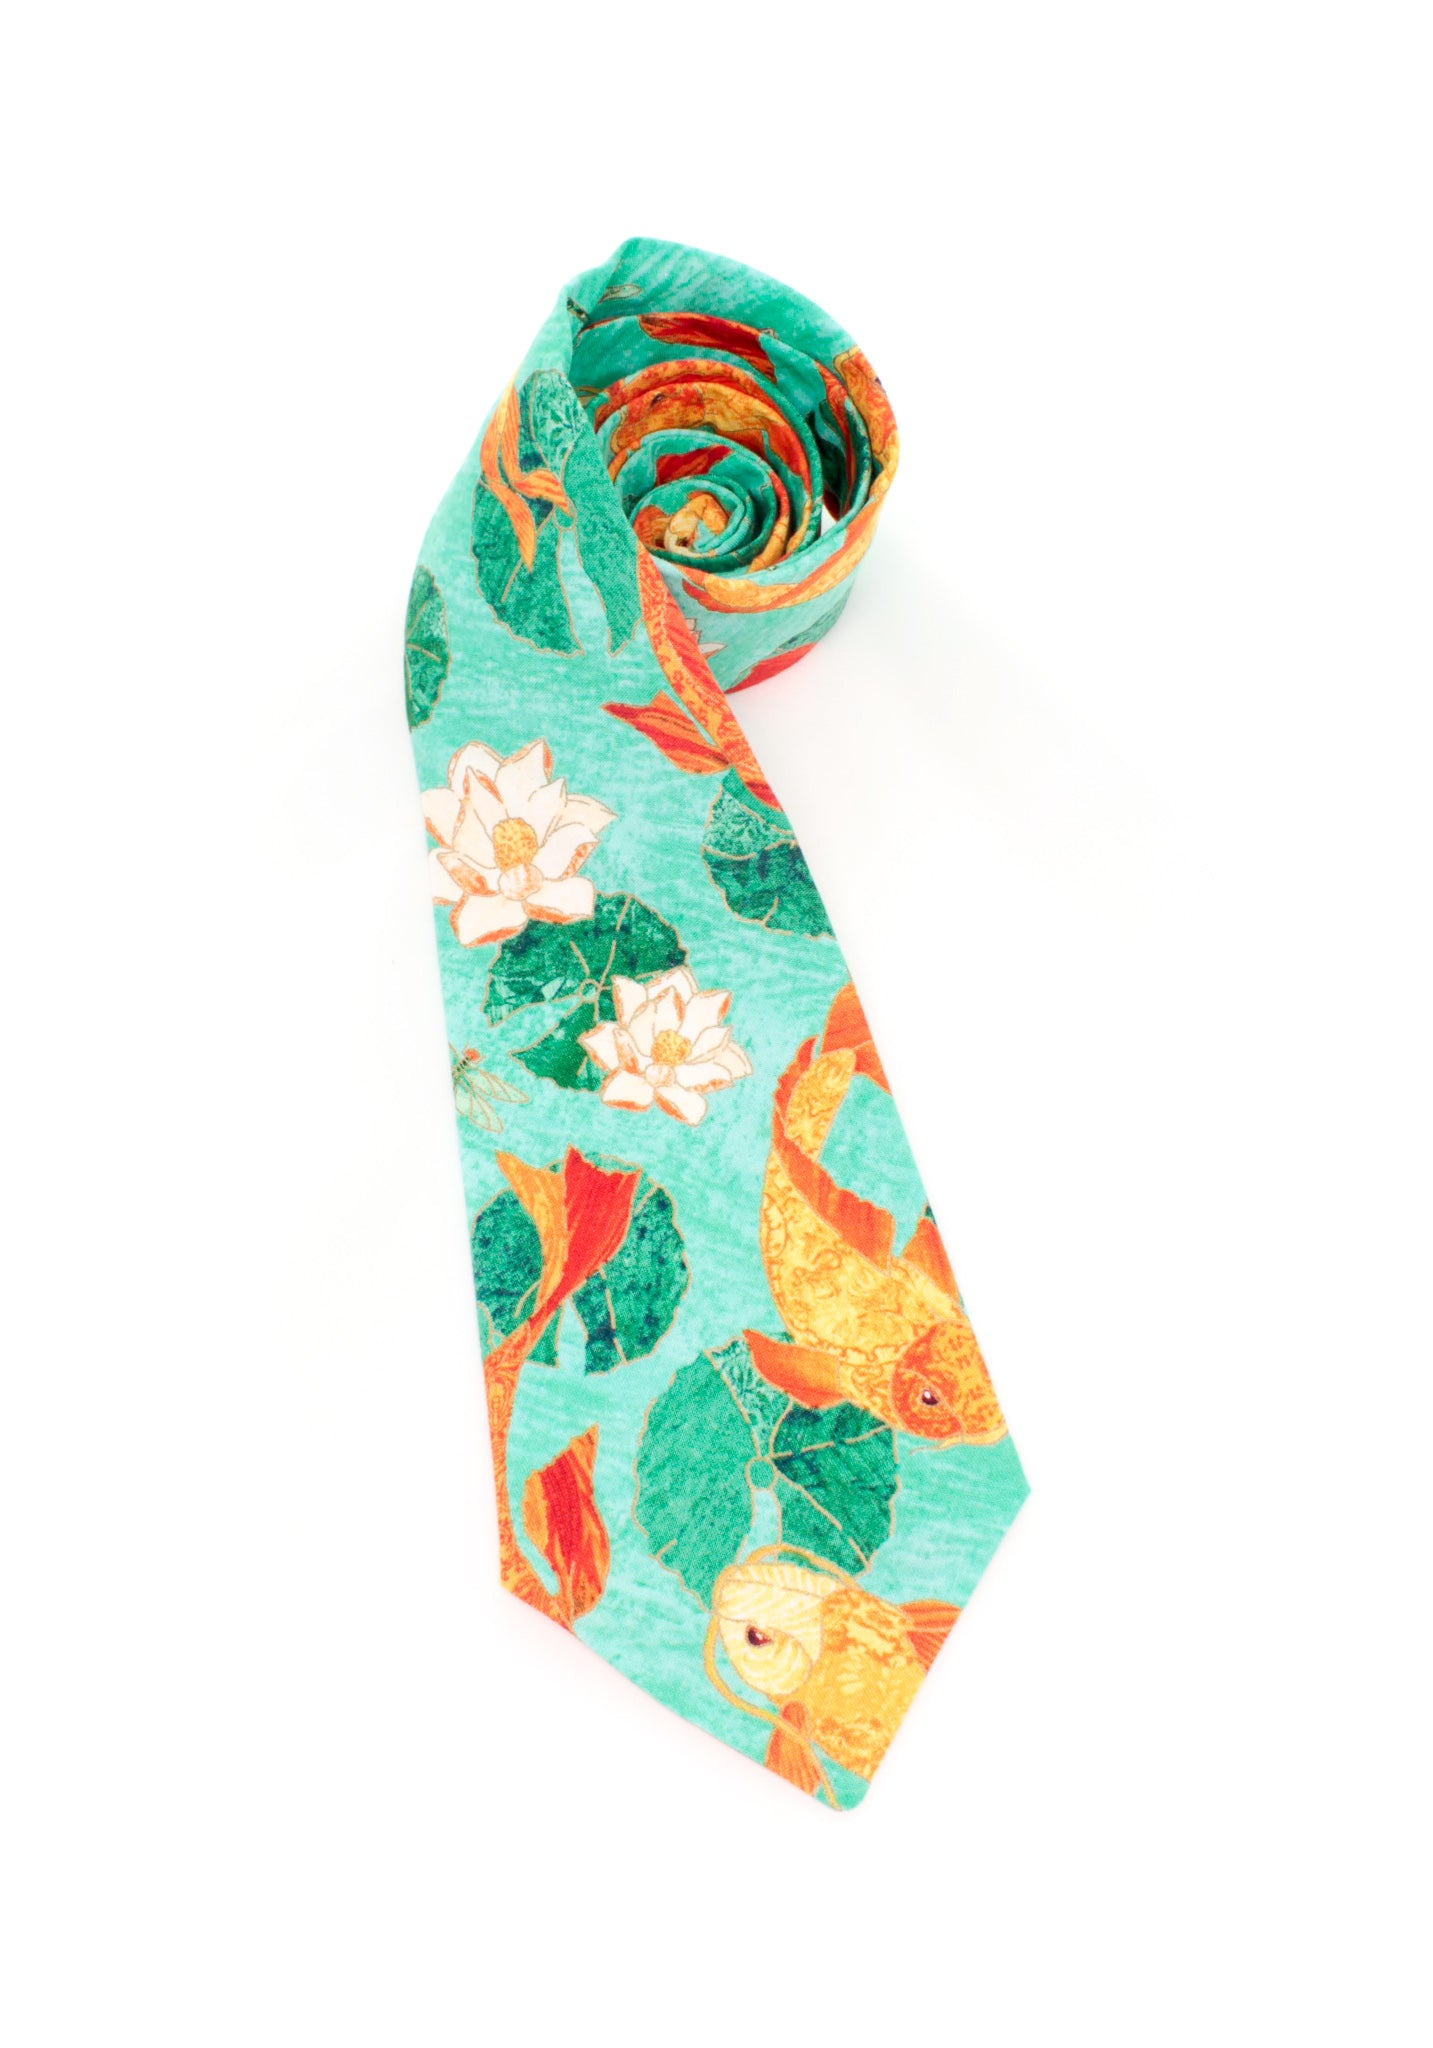 tie koi fish necktie animals theme lily pads unique beautiful teal orange www.GroovyTieSquad.com